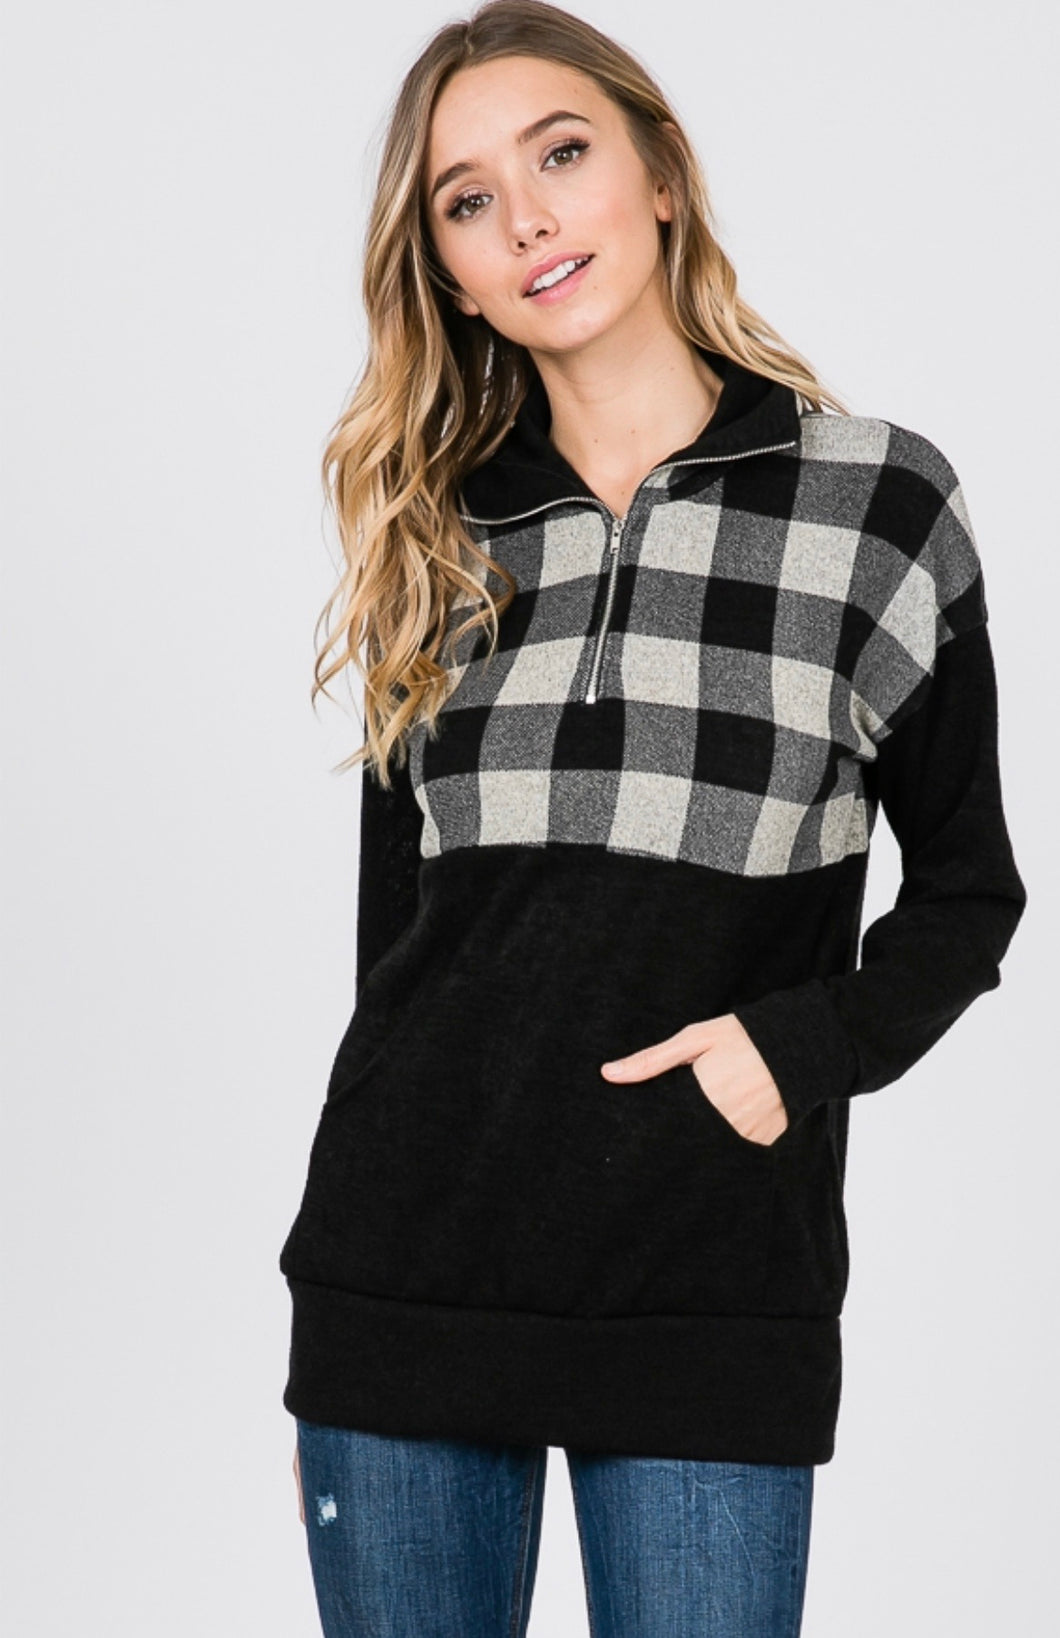 859 - Paden Plaid Pullover